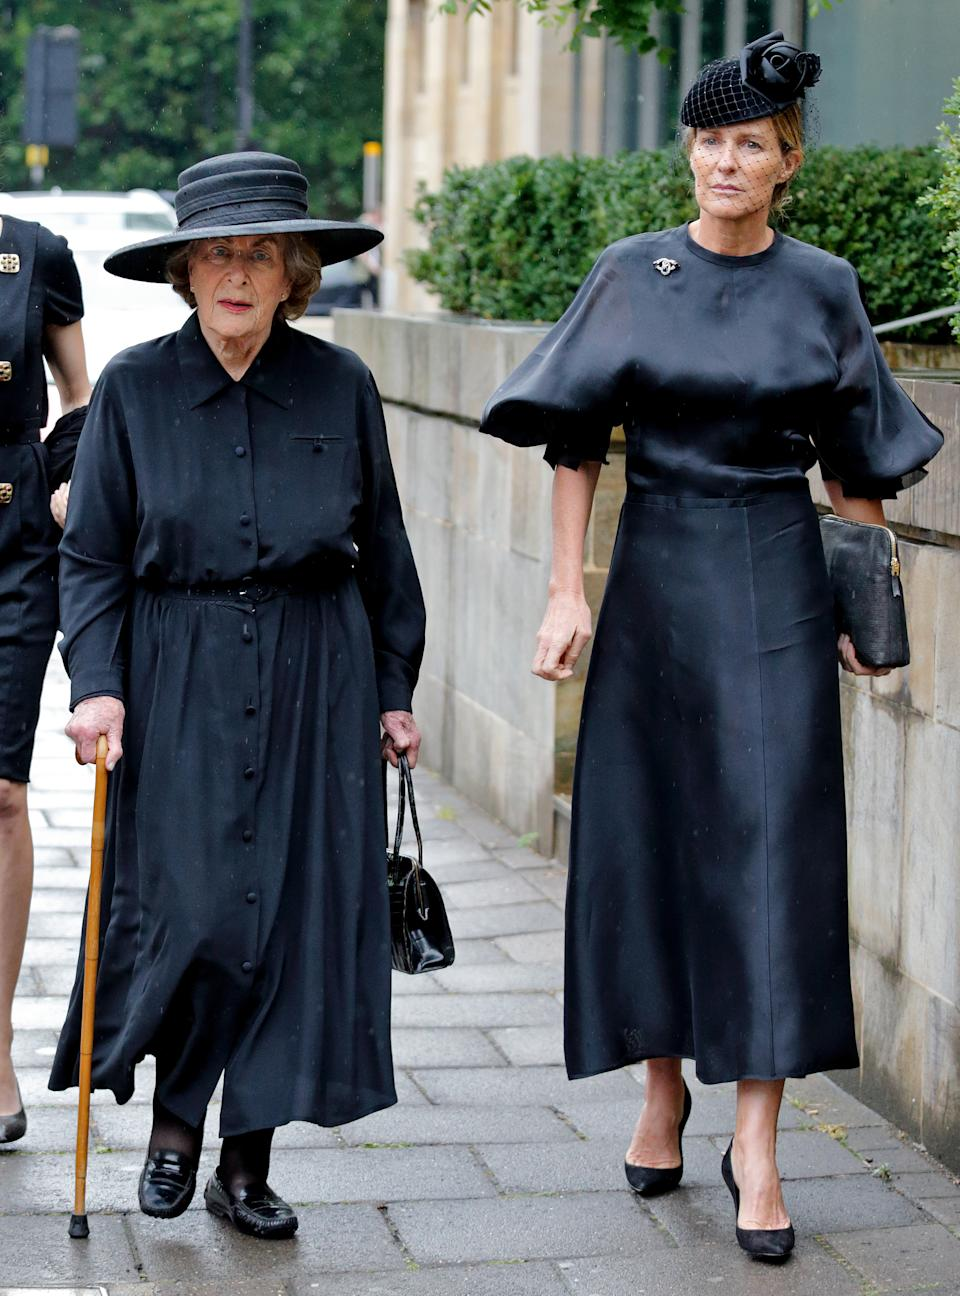 LONDON, UNITED KINGDOM - JUNE 27: (EMBARGOED FOR PUBLICATION IN UK NEWSPAPERS UNTIL 48 HOURS AFTER CREATE DATE AND TIME) Lady Pamela Hicks and India Hicks attend the funeral of Patricia Knatchbull, Countess Mountbatten of Burma at St Paul's Church, Knightsbridge on June 27, 2017 in London, England. Patricia, Countess Mountbatten of Burma daughter of Louis Mountbatten, 1st Earl Mountbatten of Burma and third cousin of Queen Elizabeth II died aged 93 on June 13 2017. (Photo by Max Mumby/Indigo/Getty Images)